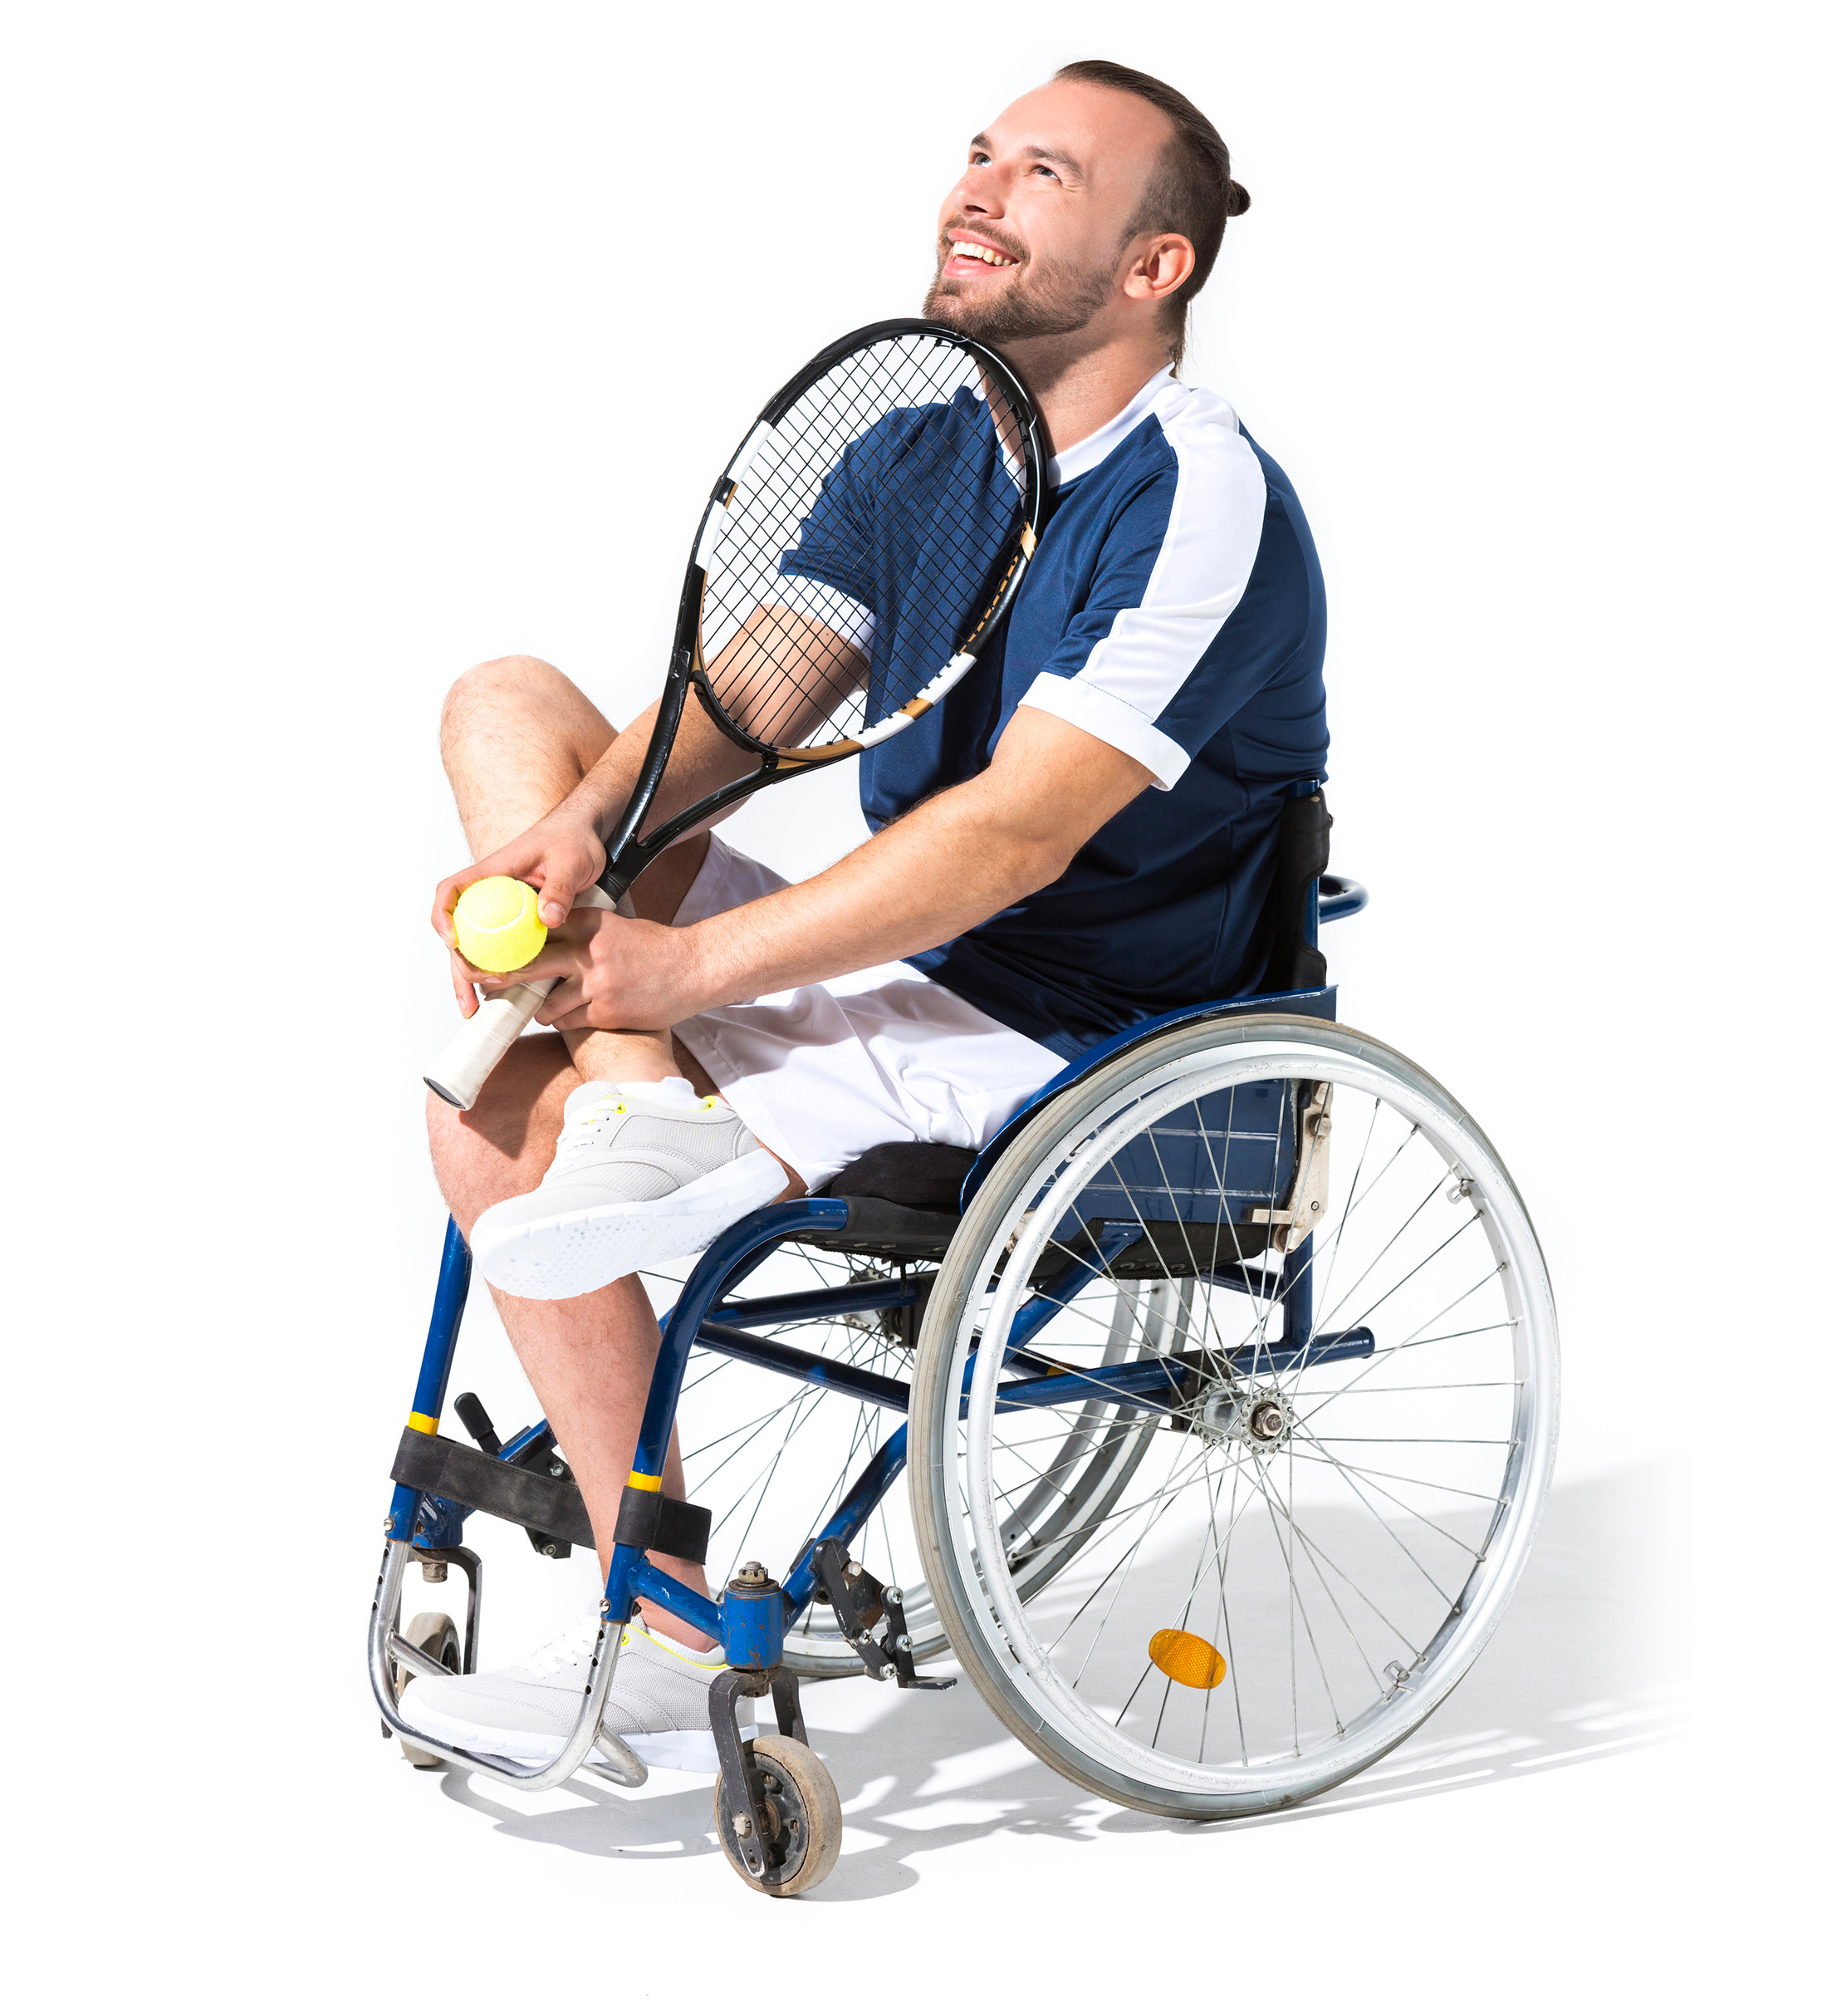 Tetraplegic with tennis racket and ball